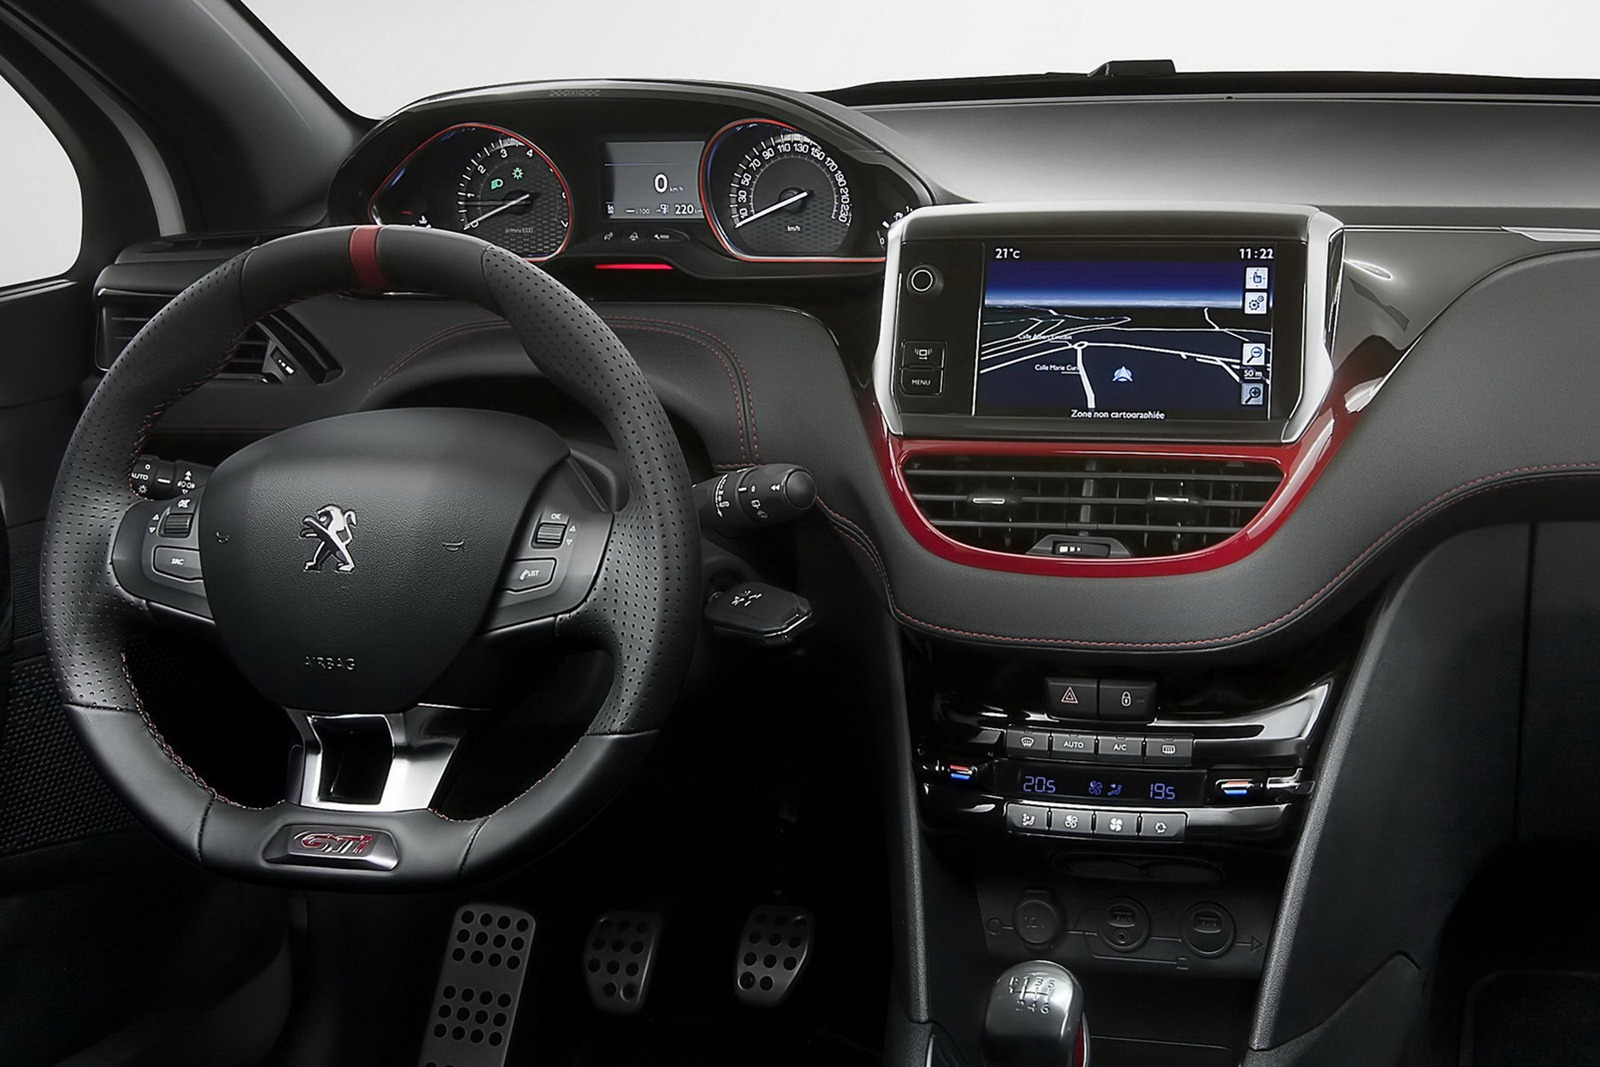 Peugeot 208 review 2013 peugeot 208 gti 2017 2018 best for Peugeot 208 interior 2017